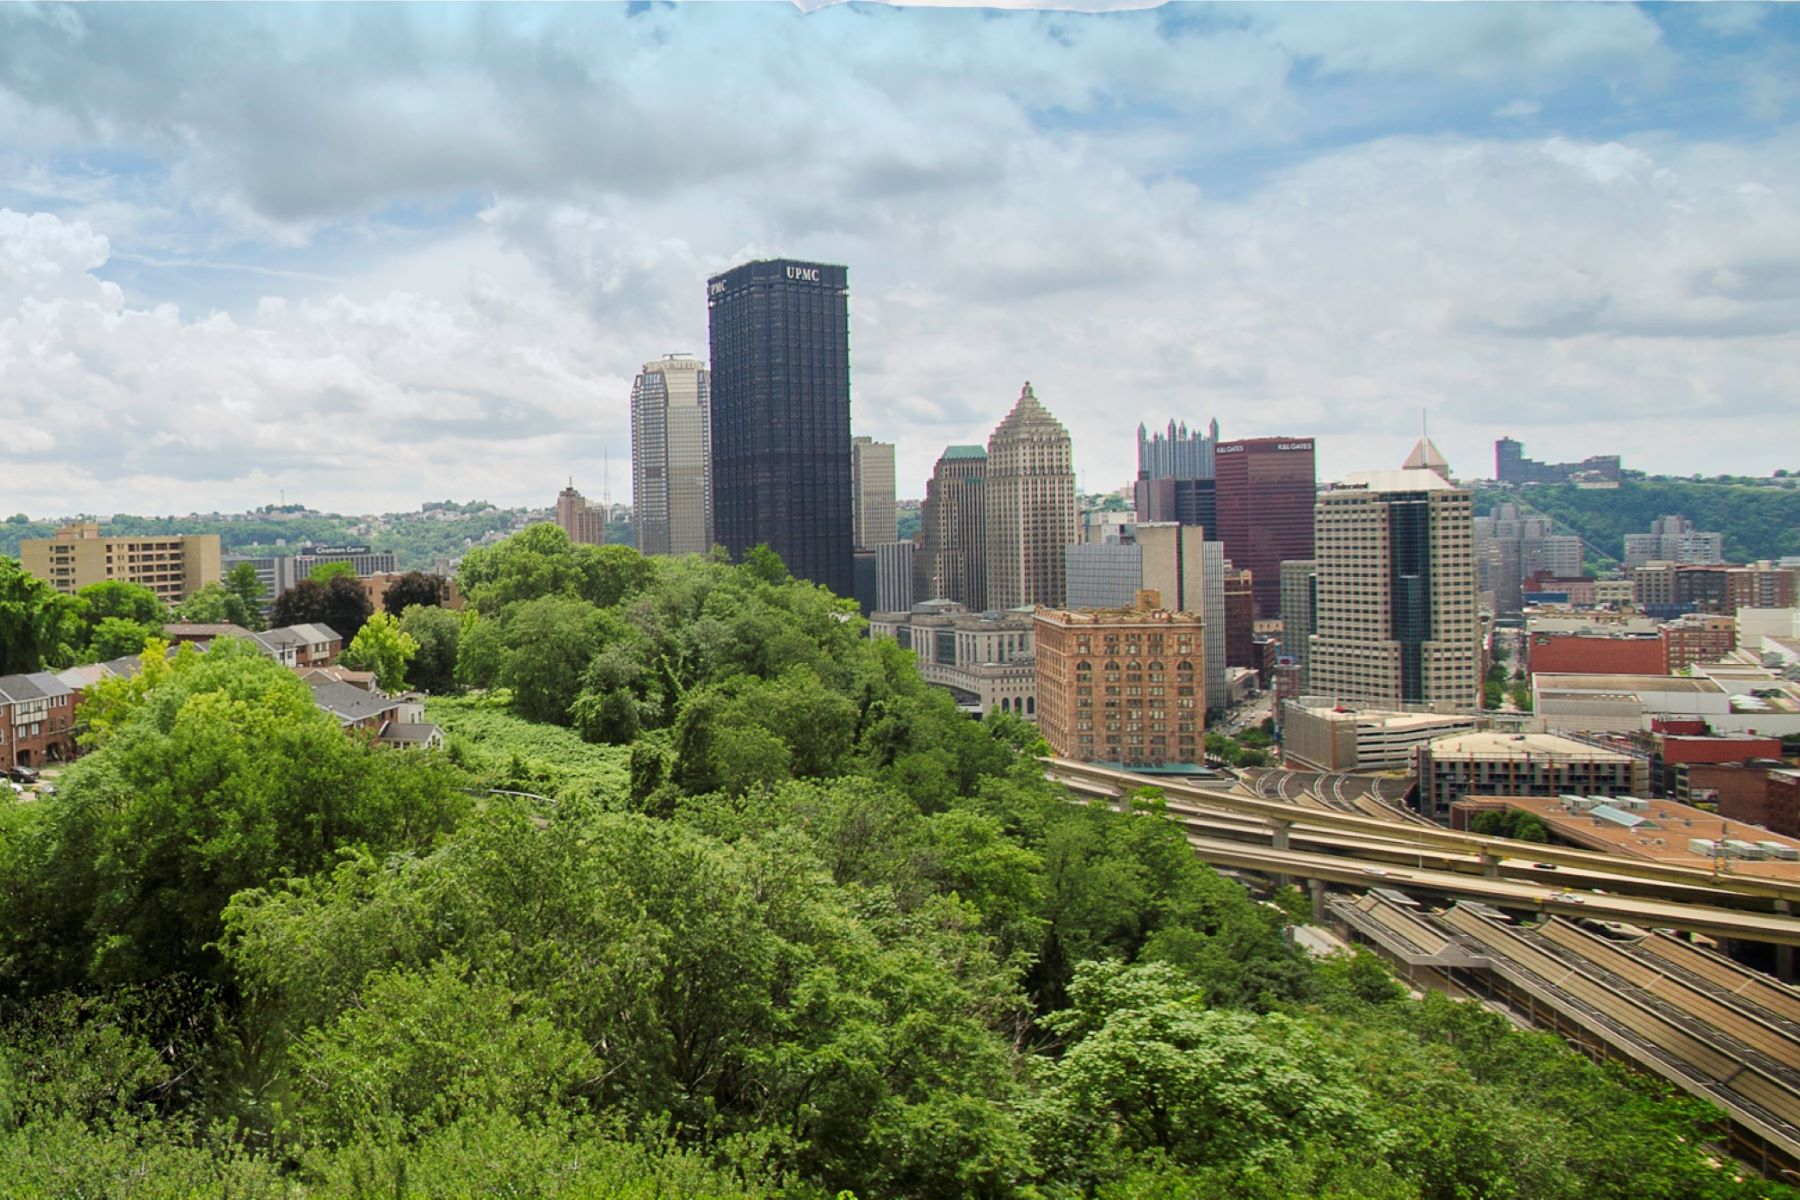 Additional photo for property listing at Riverview Ridge Condos 1825 Arcena Street #1 Pittsburgh, Pennsylvania 15219 United States